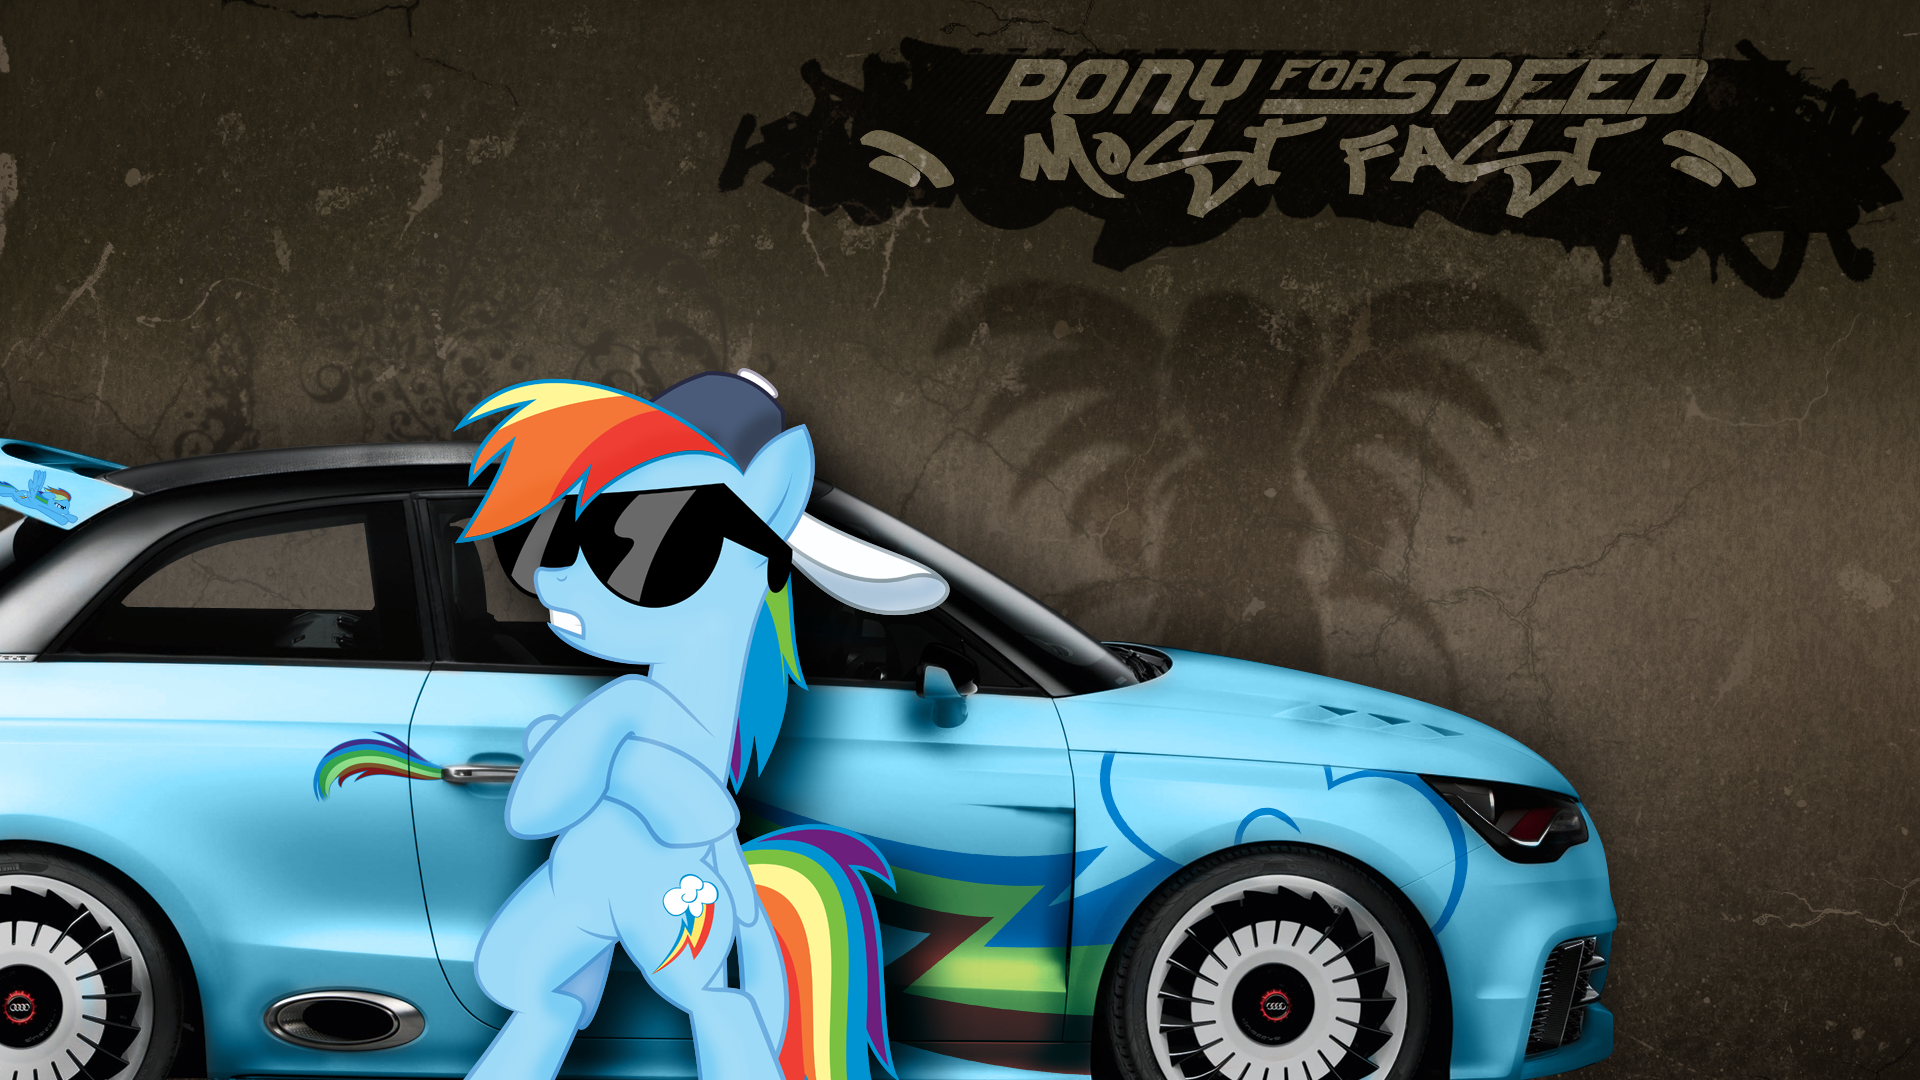 Wallpaper Crossover - PFS Most Fast by BlackGryph0n, EROCKERTORRES, kitsuneymg, Mackaged, NightmareMoonS and Peachspices